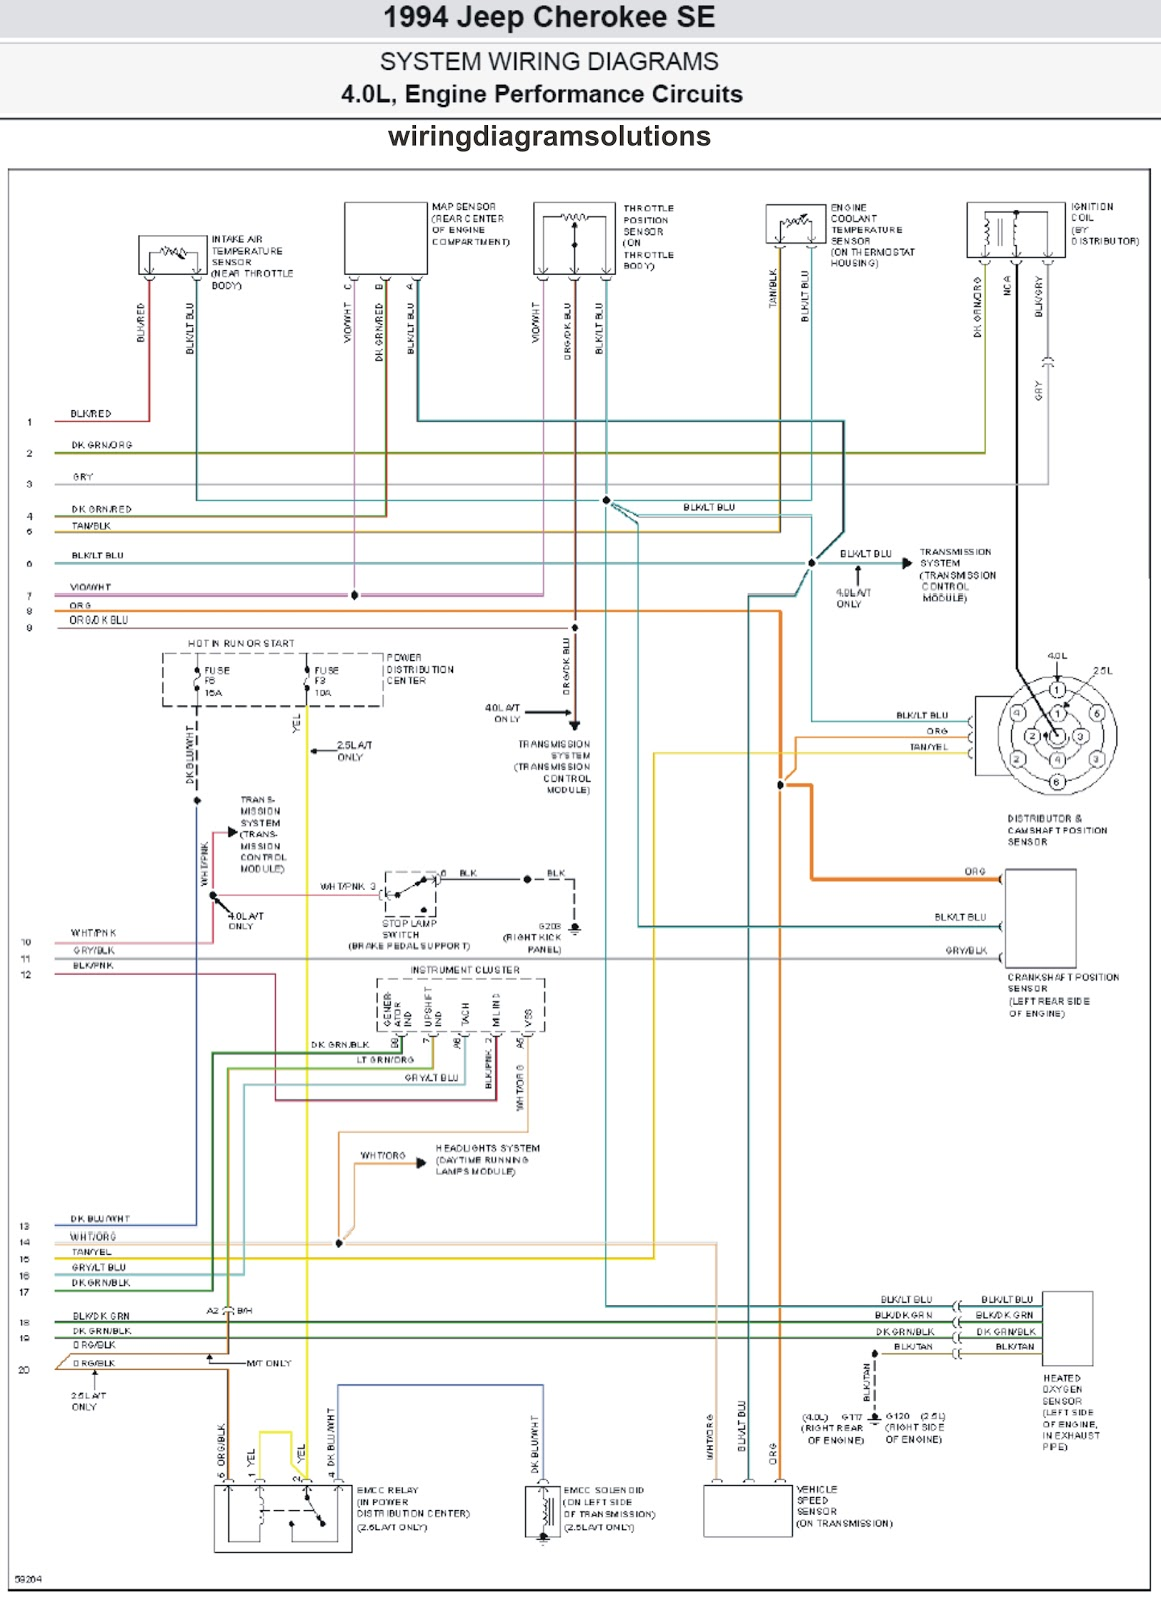 car stereo wiring diagram jeep cherokee pictures. Black Bedroom Furniture Sets. Home Design Ideas